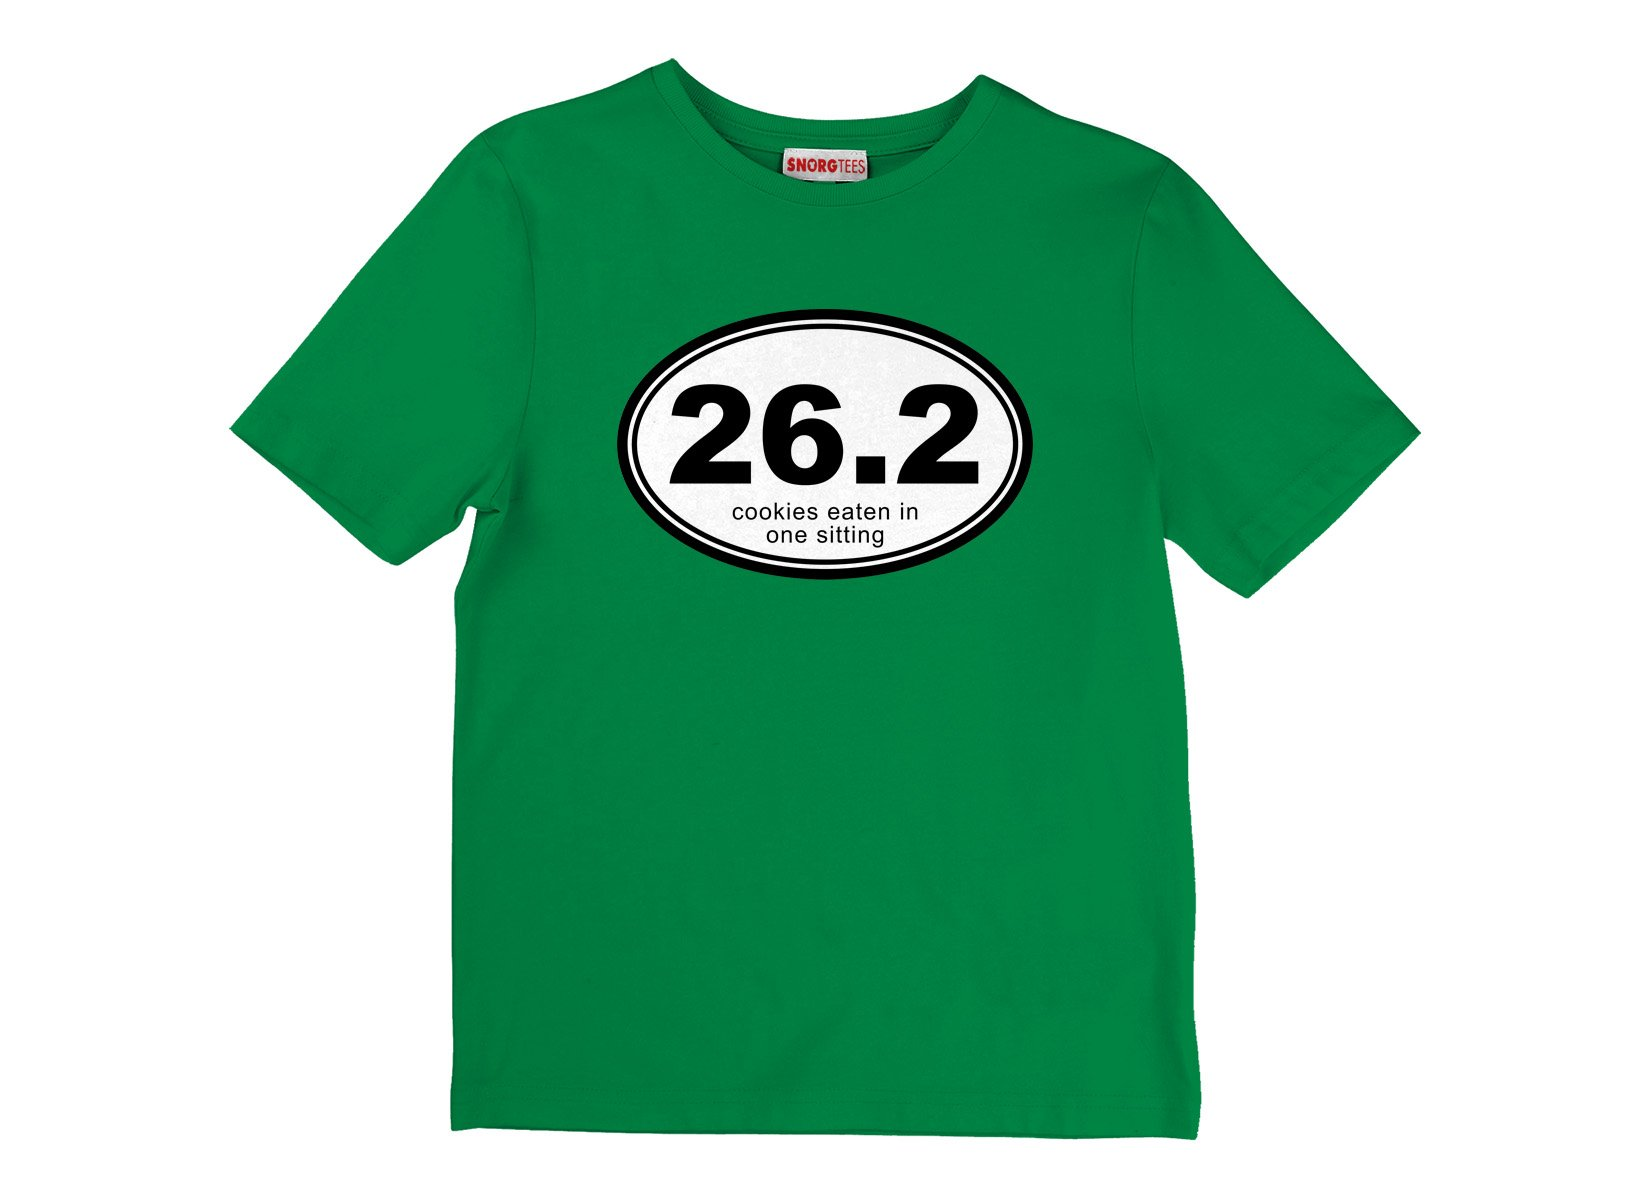 26.2 Cookies Eaten In One Sitting on Kids T-Shirt